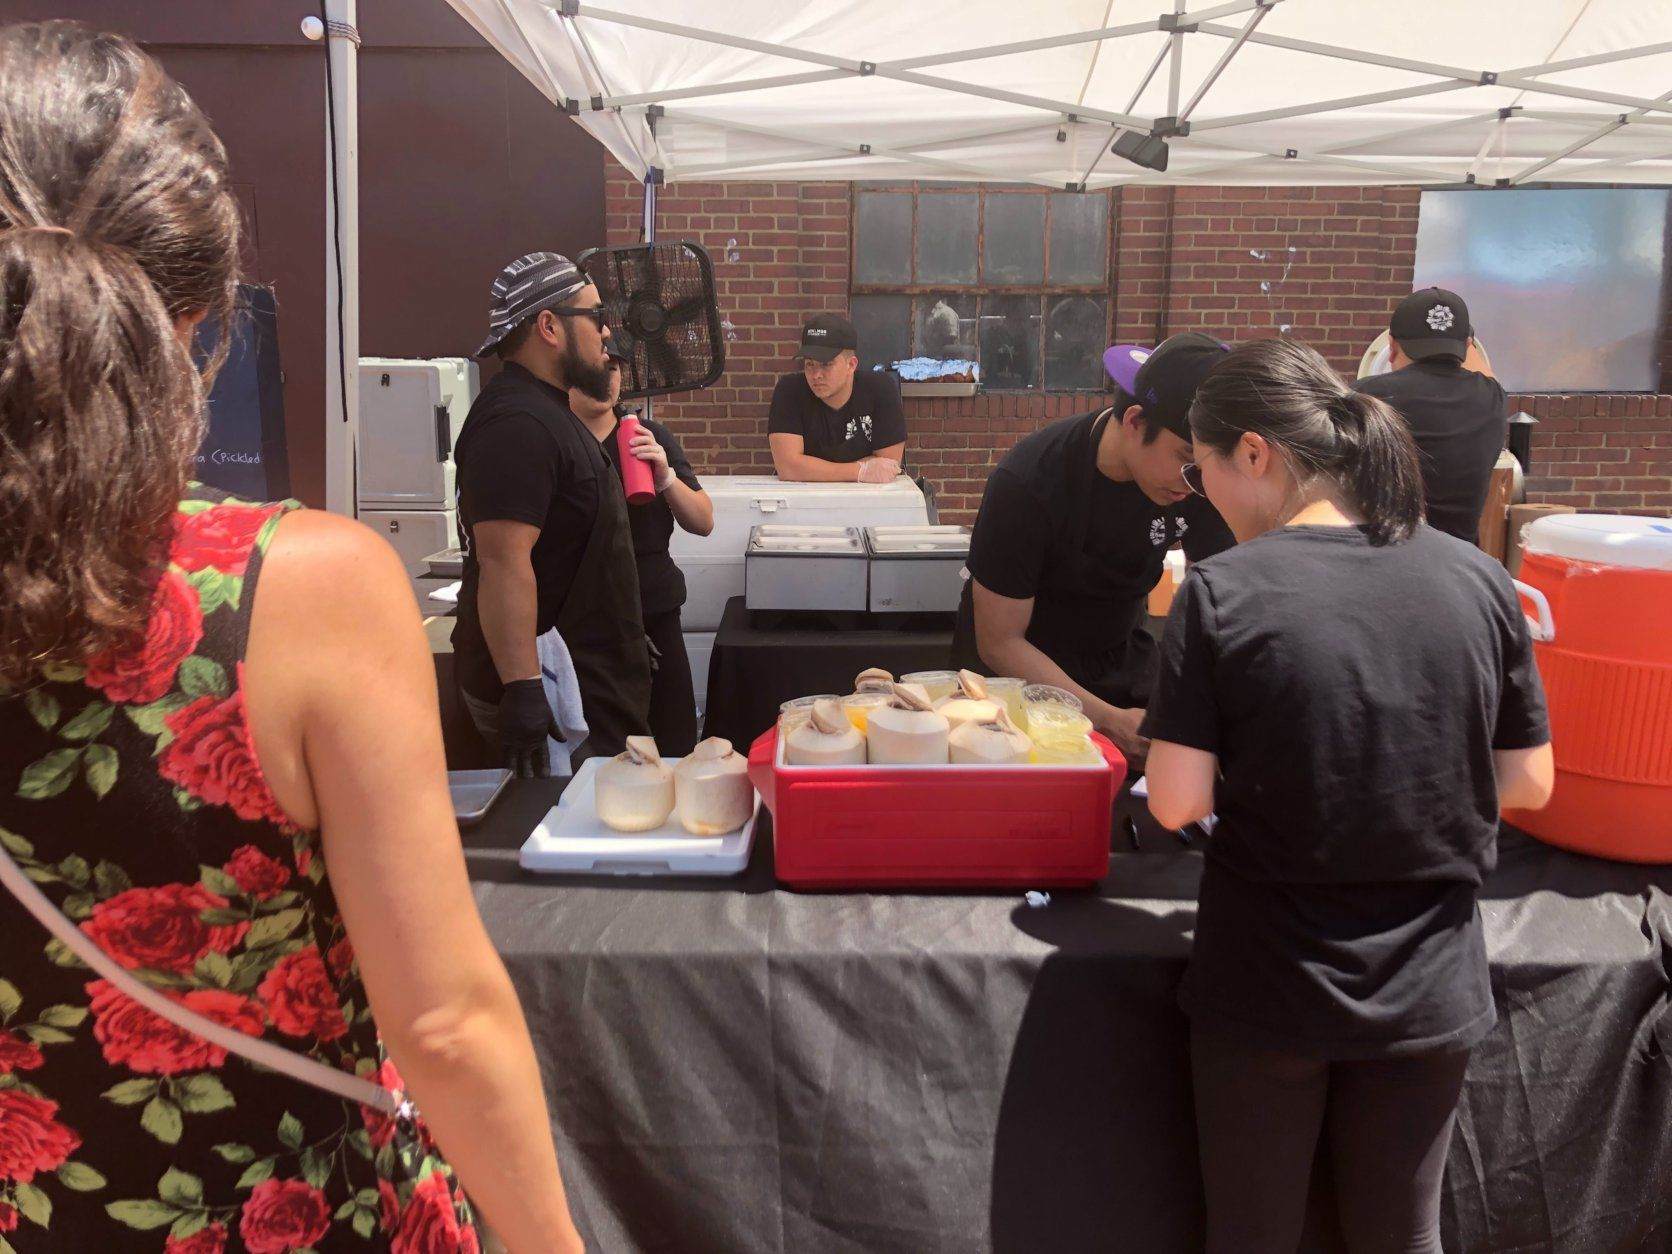 Customers line up at food festival